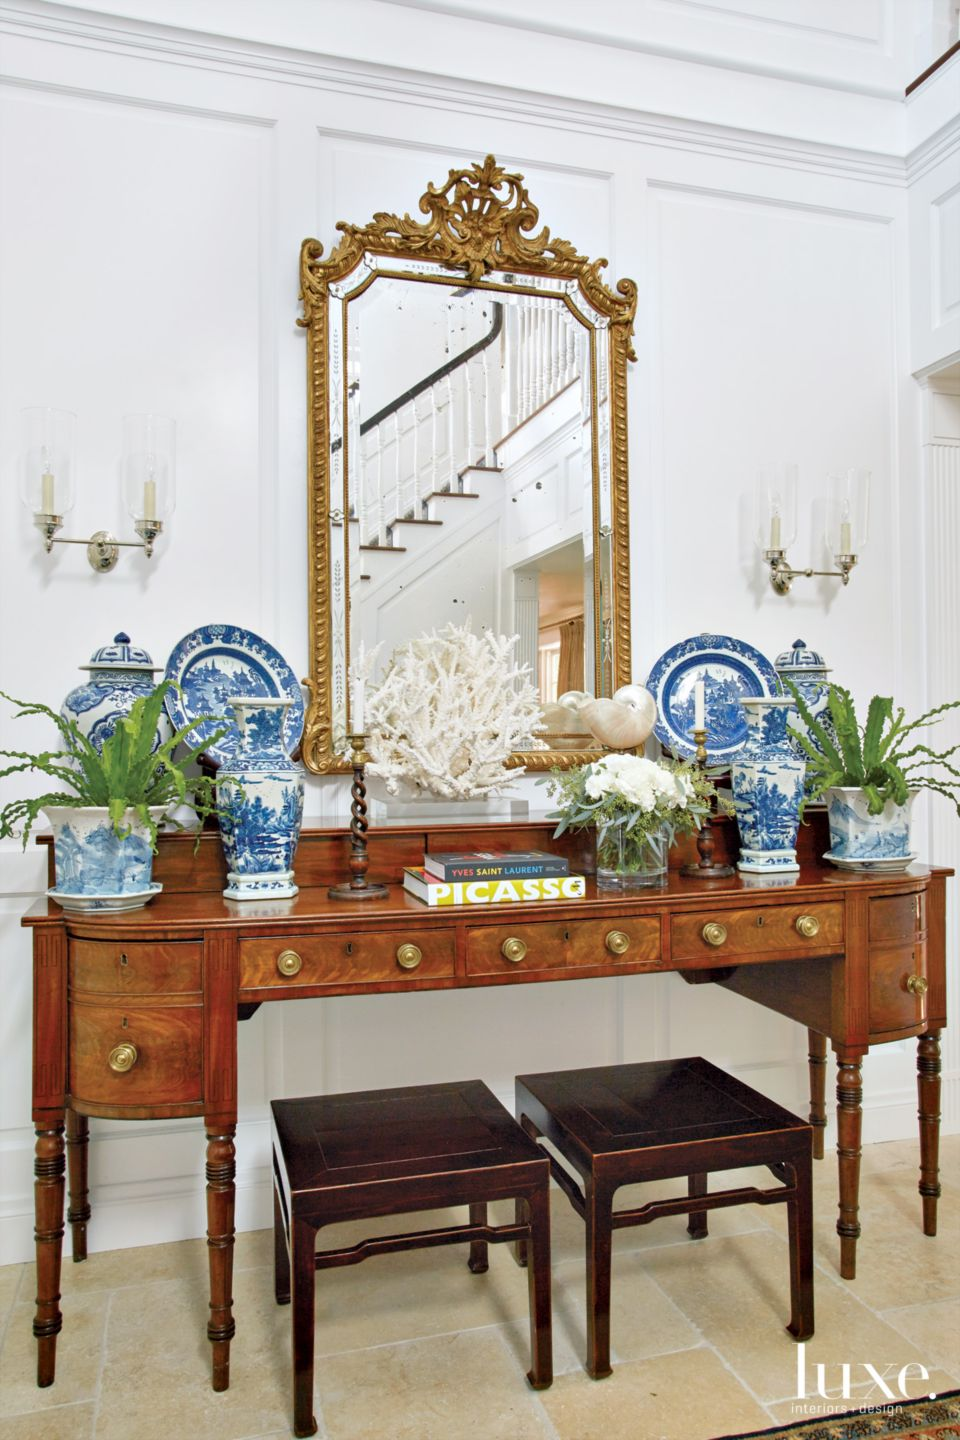 Traditional White Foyer Vignette with Chinese Pottery